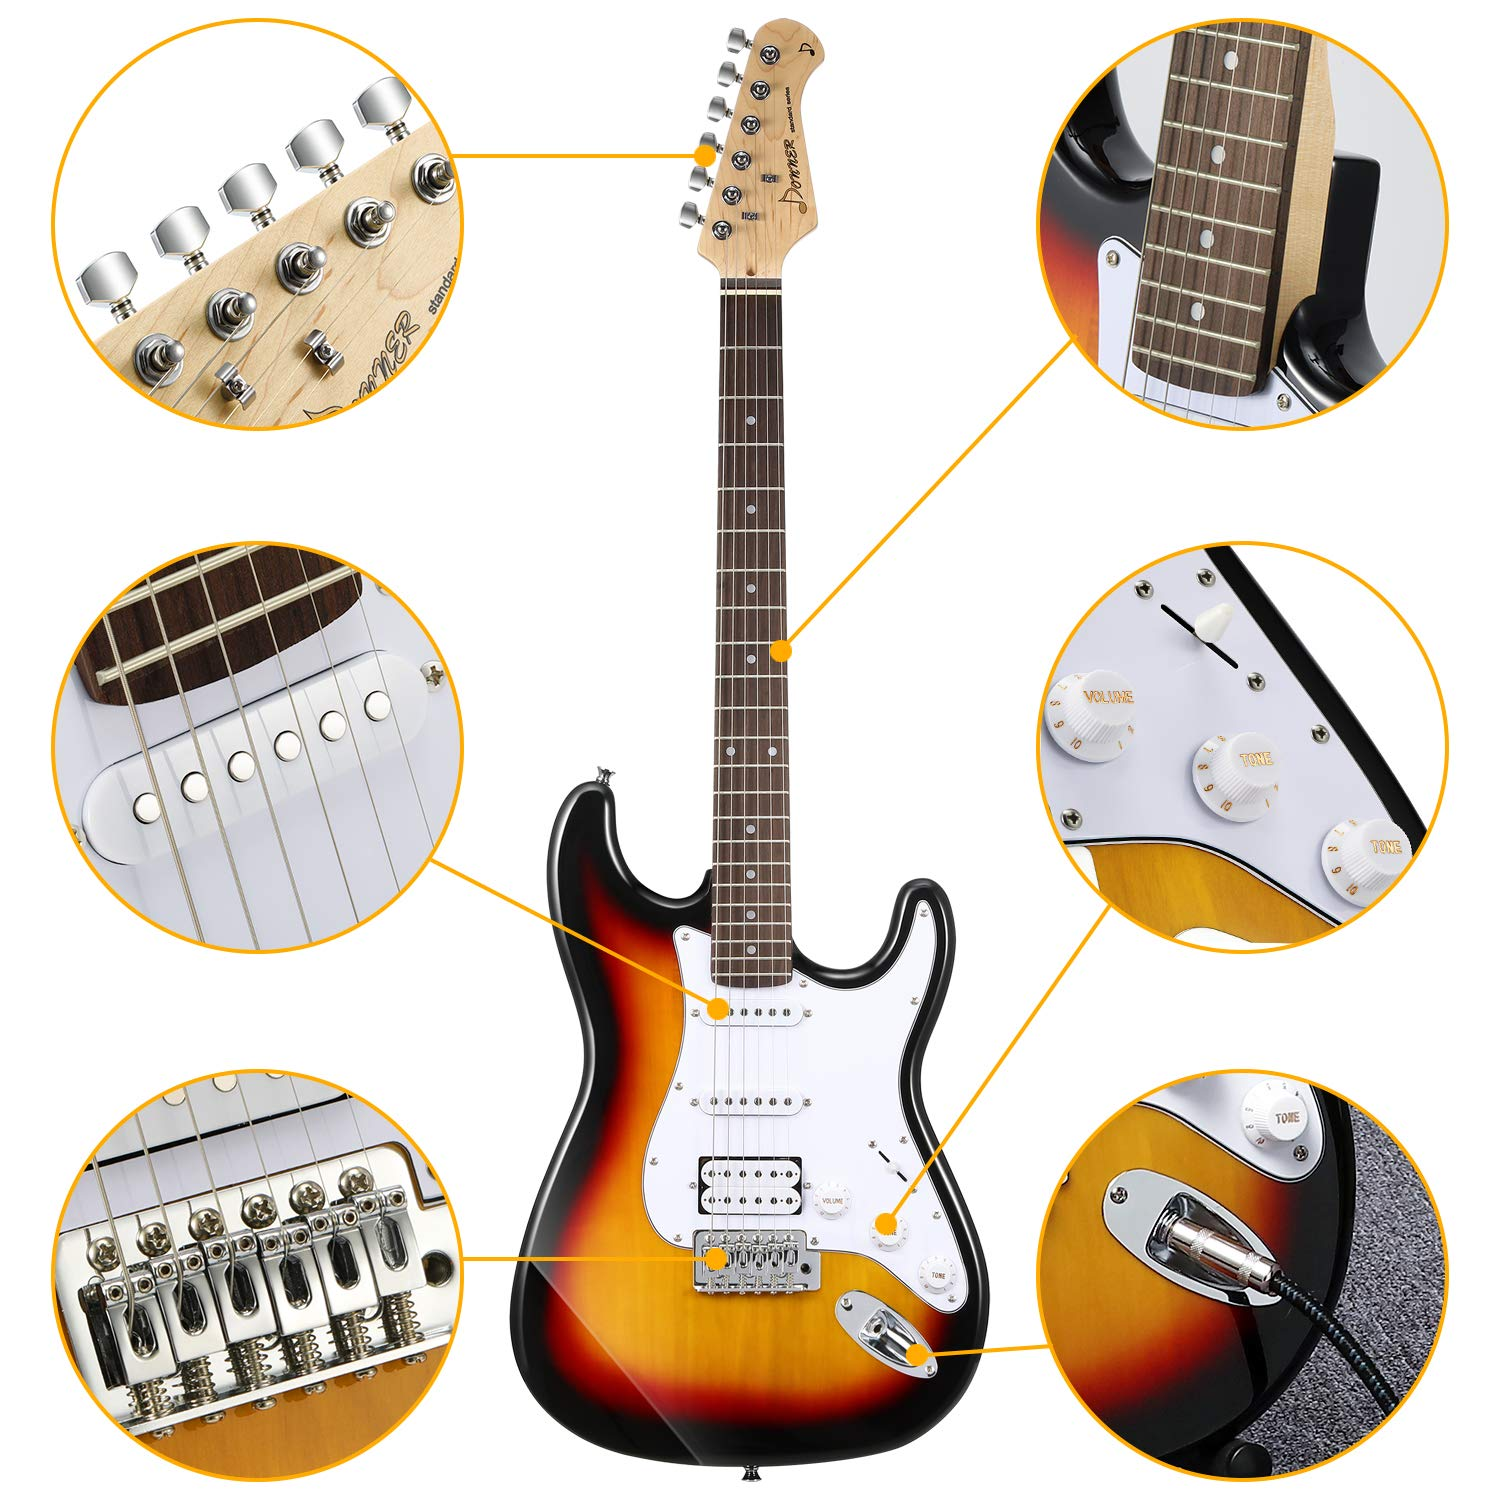 Close-up of different parts of the Donner DST-1S Sunburst Electric Guitar